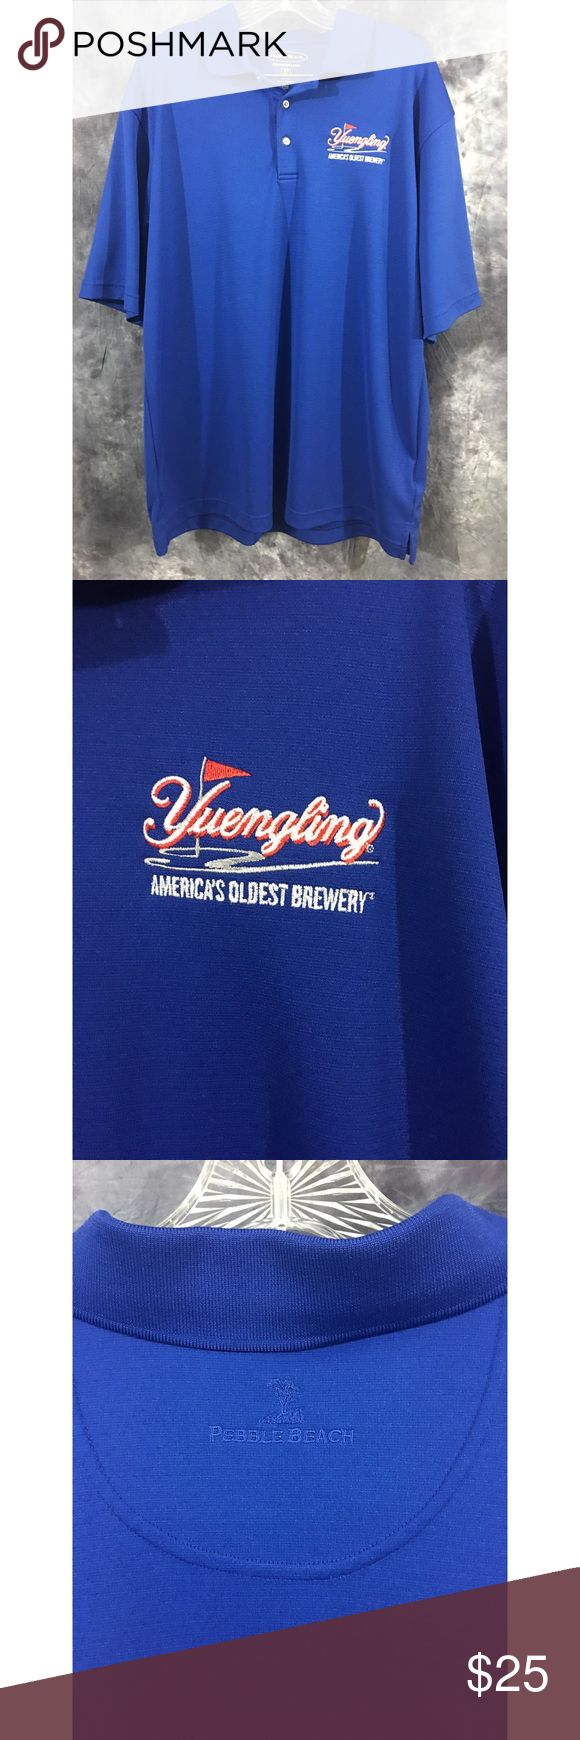 """Yuengling Pebble Beach Polo Shirt XL Yuengling """"World's Oldest Brewery"""" polo shirt in size XL. In excellent preowned condition with no flaws. Royal blue body, Embroidered Yuengling logo, Pebble Beach logo on back neck. Pebble Beach Shirts Polos"""